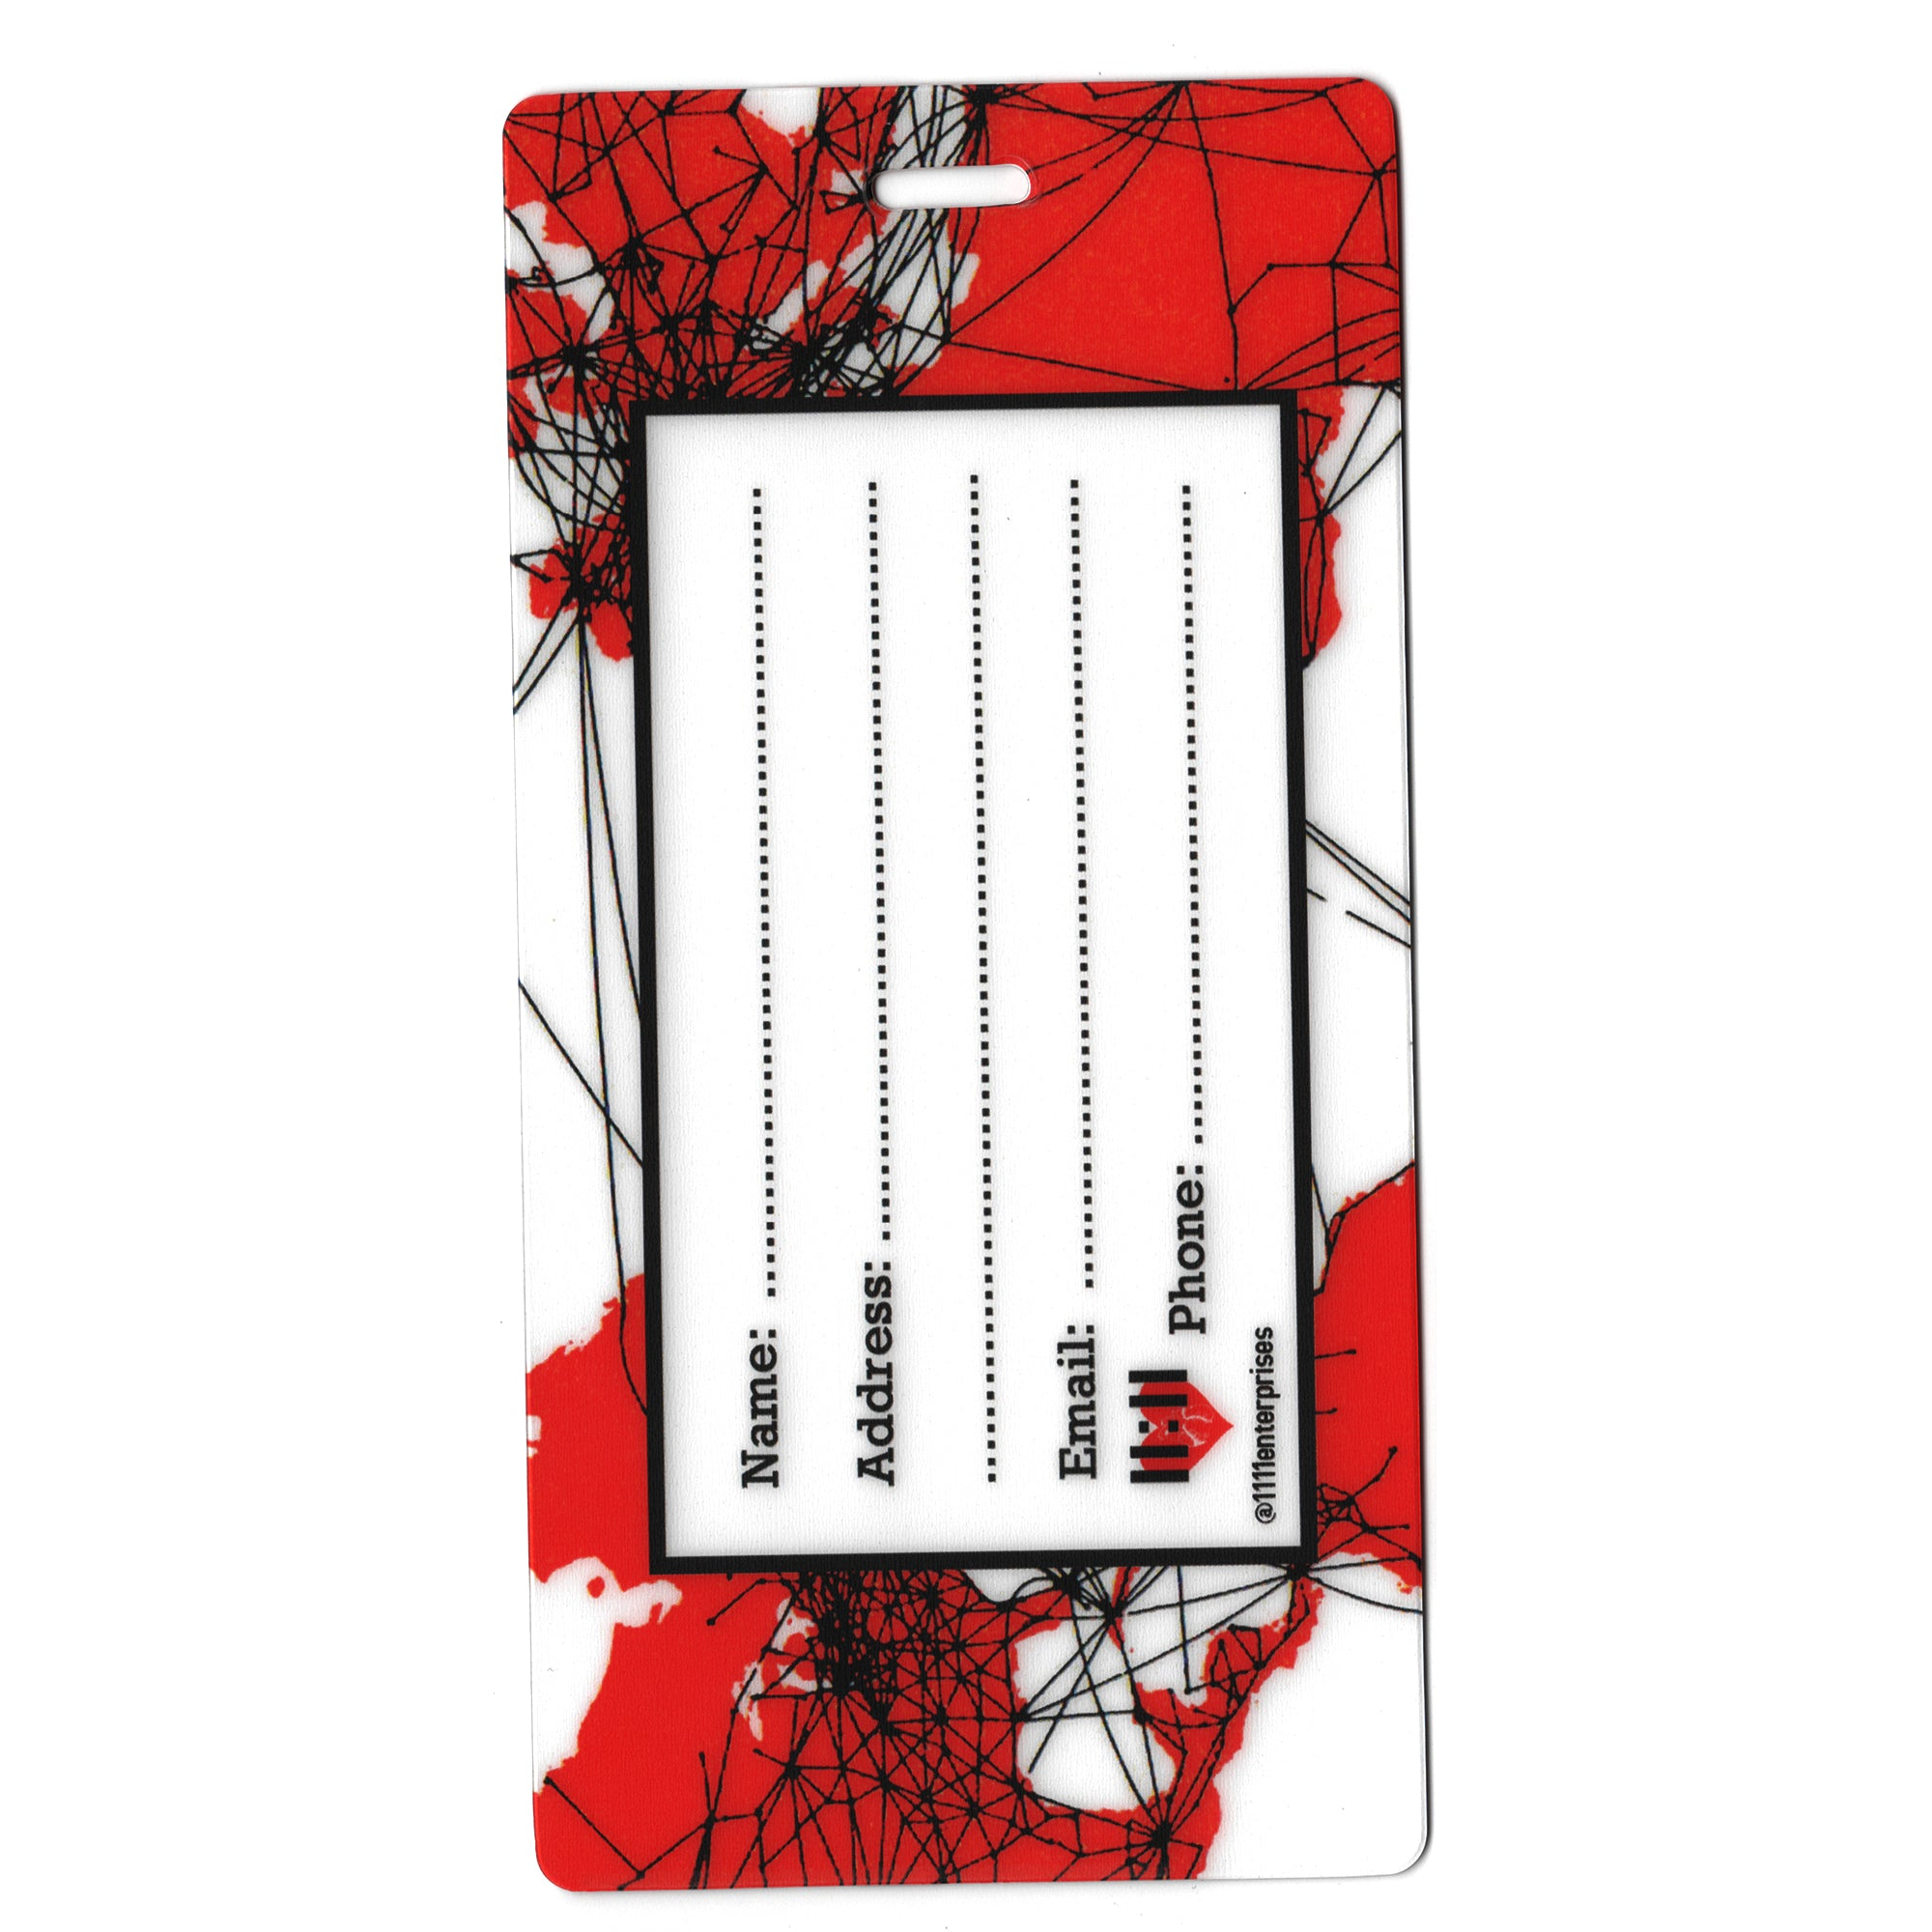 Airlines Route Map Travel Set- Passport Holder + Matching Luggage Tags